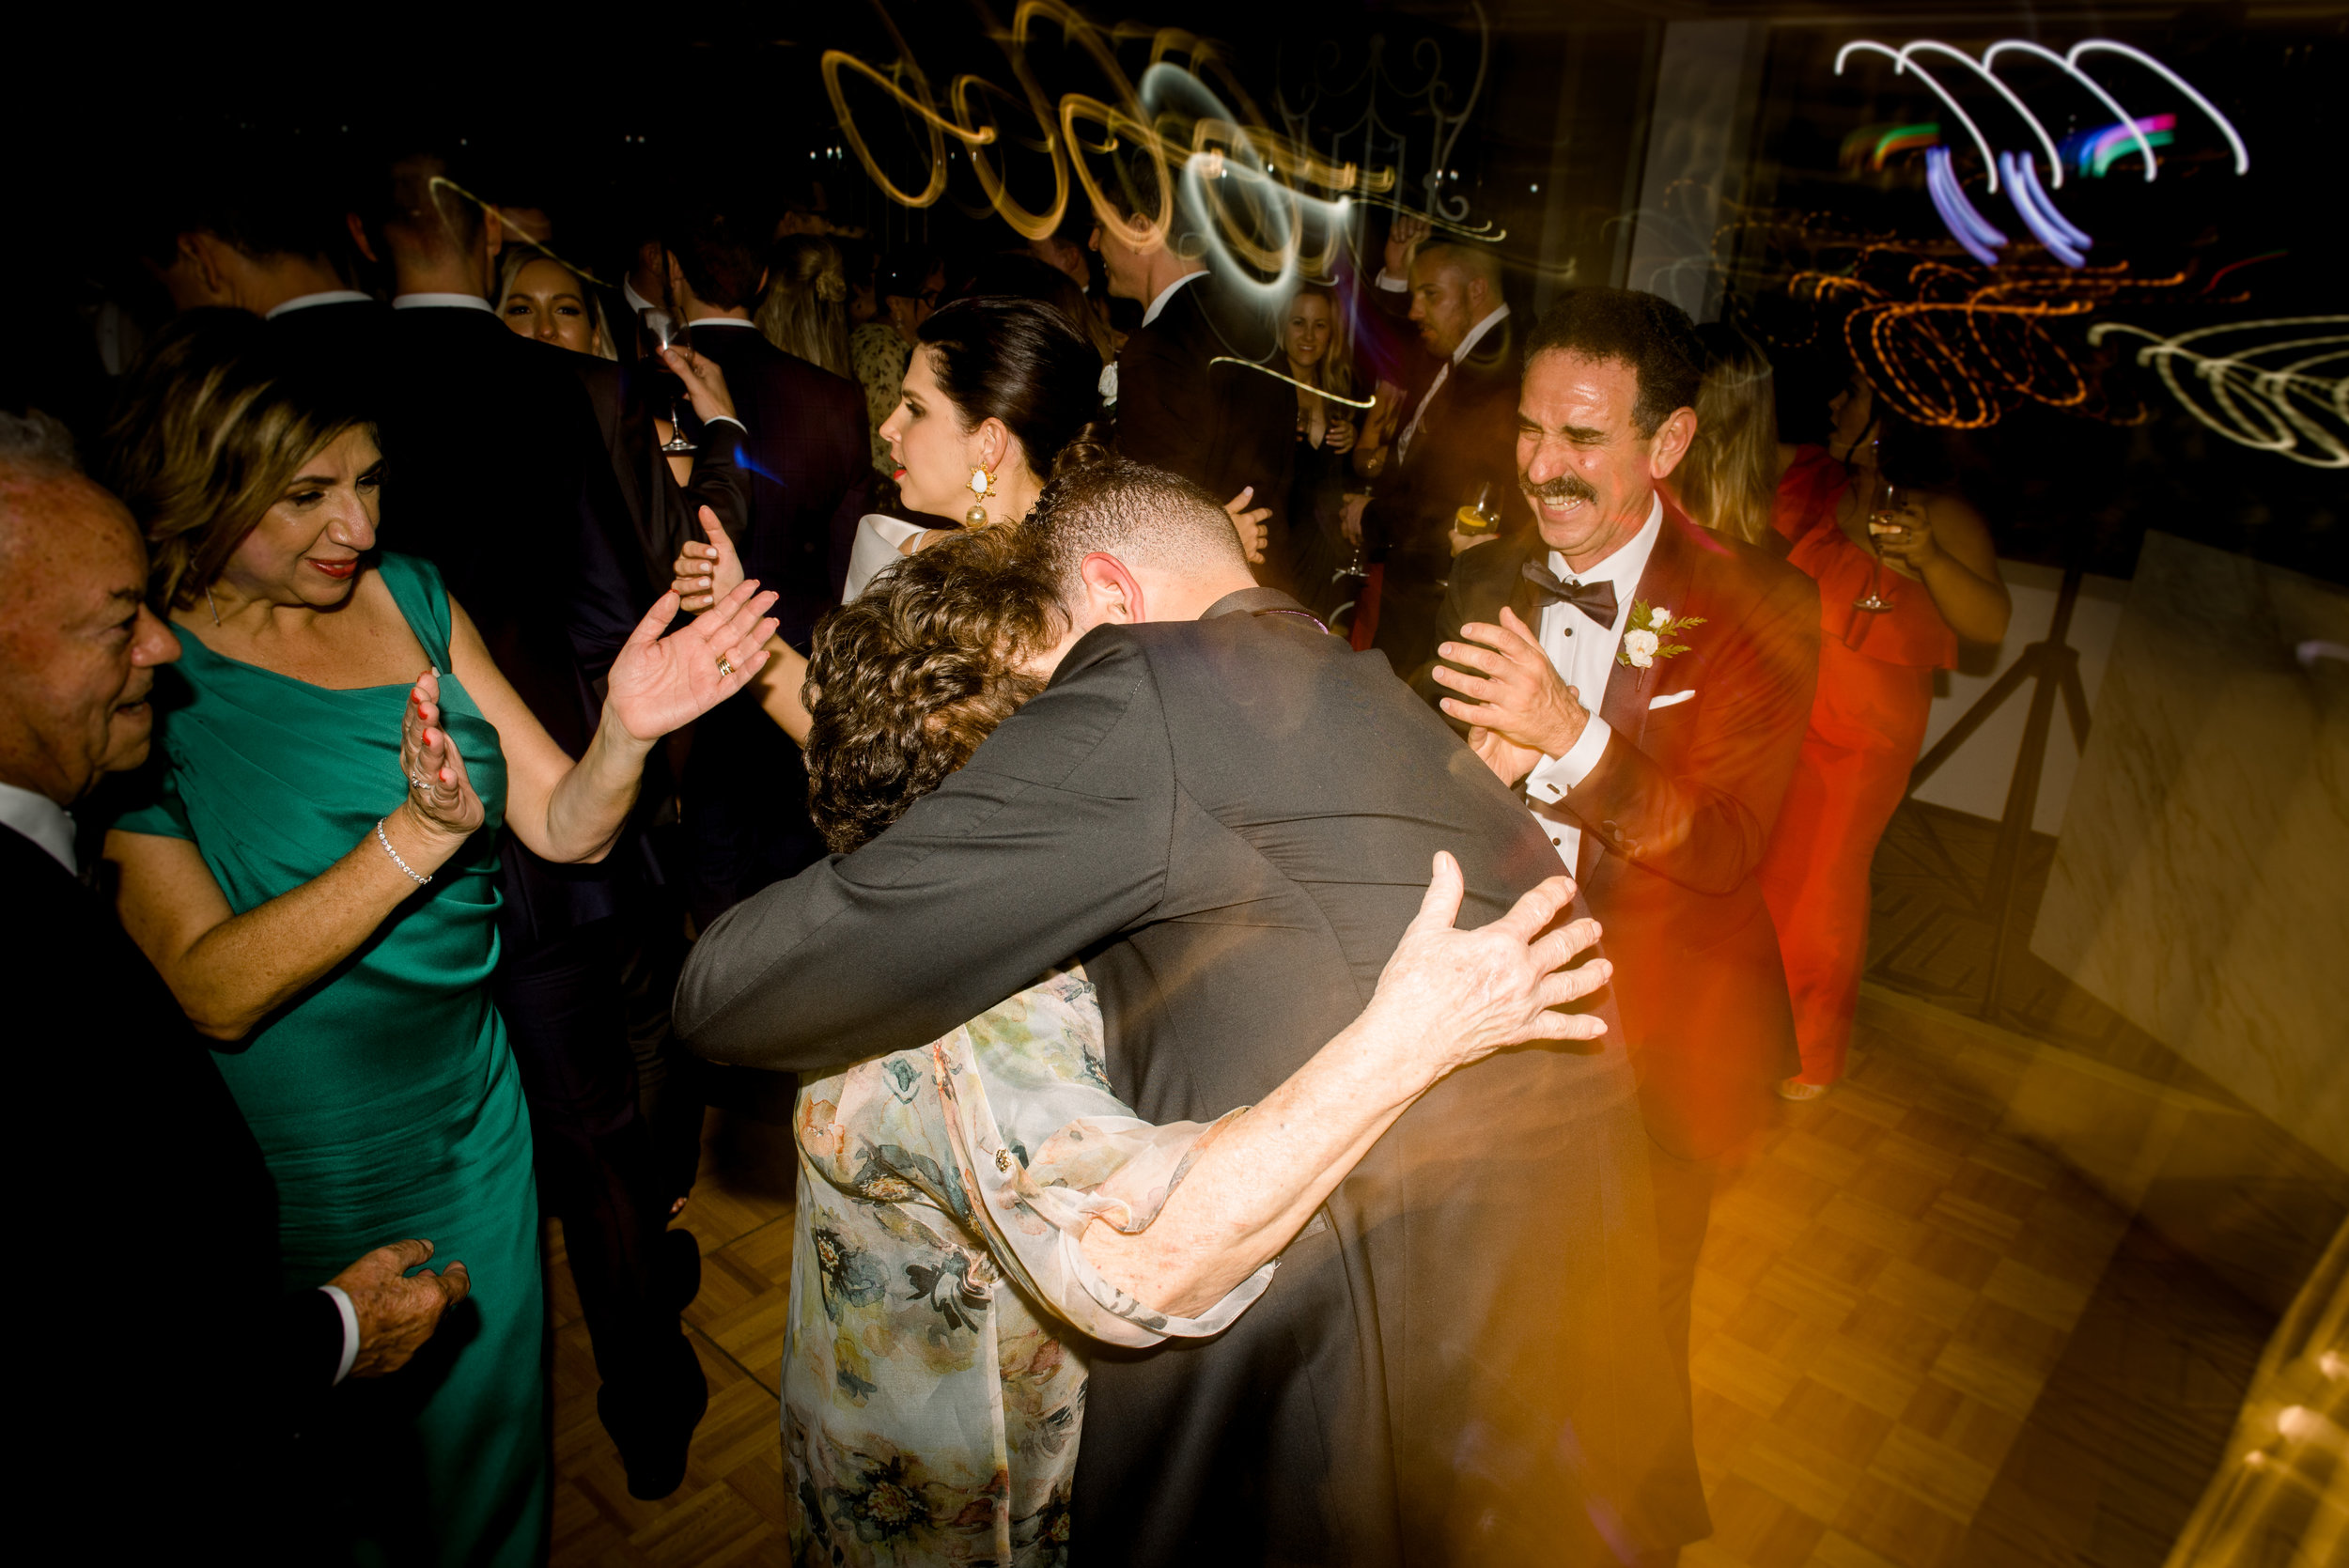 black-bird-brisbane-wedding-photography-film-photography-beautiful-reception-dance-candid-tweed-coast-wedding-180.jpg